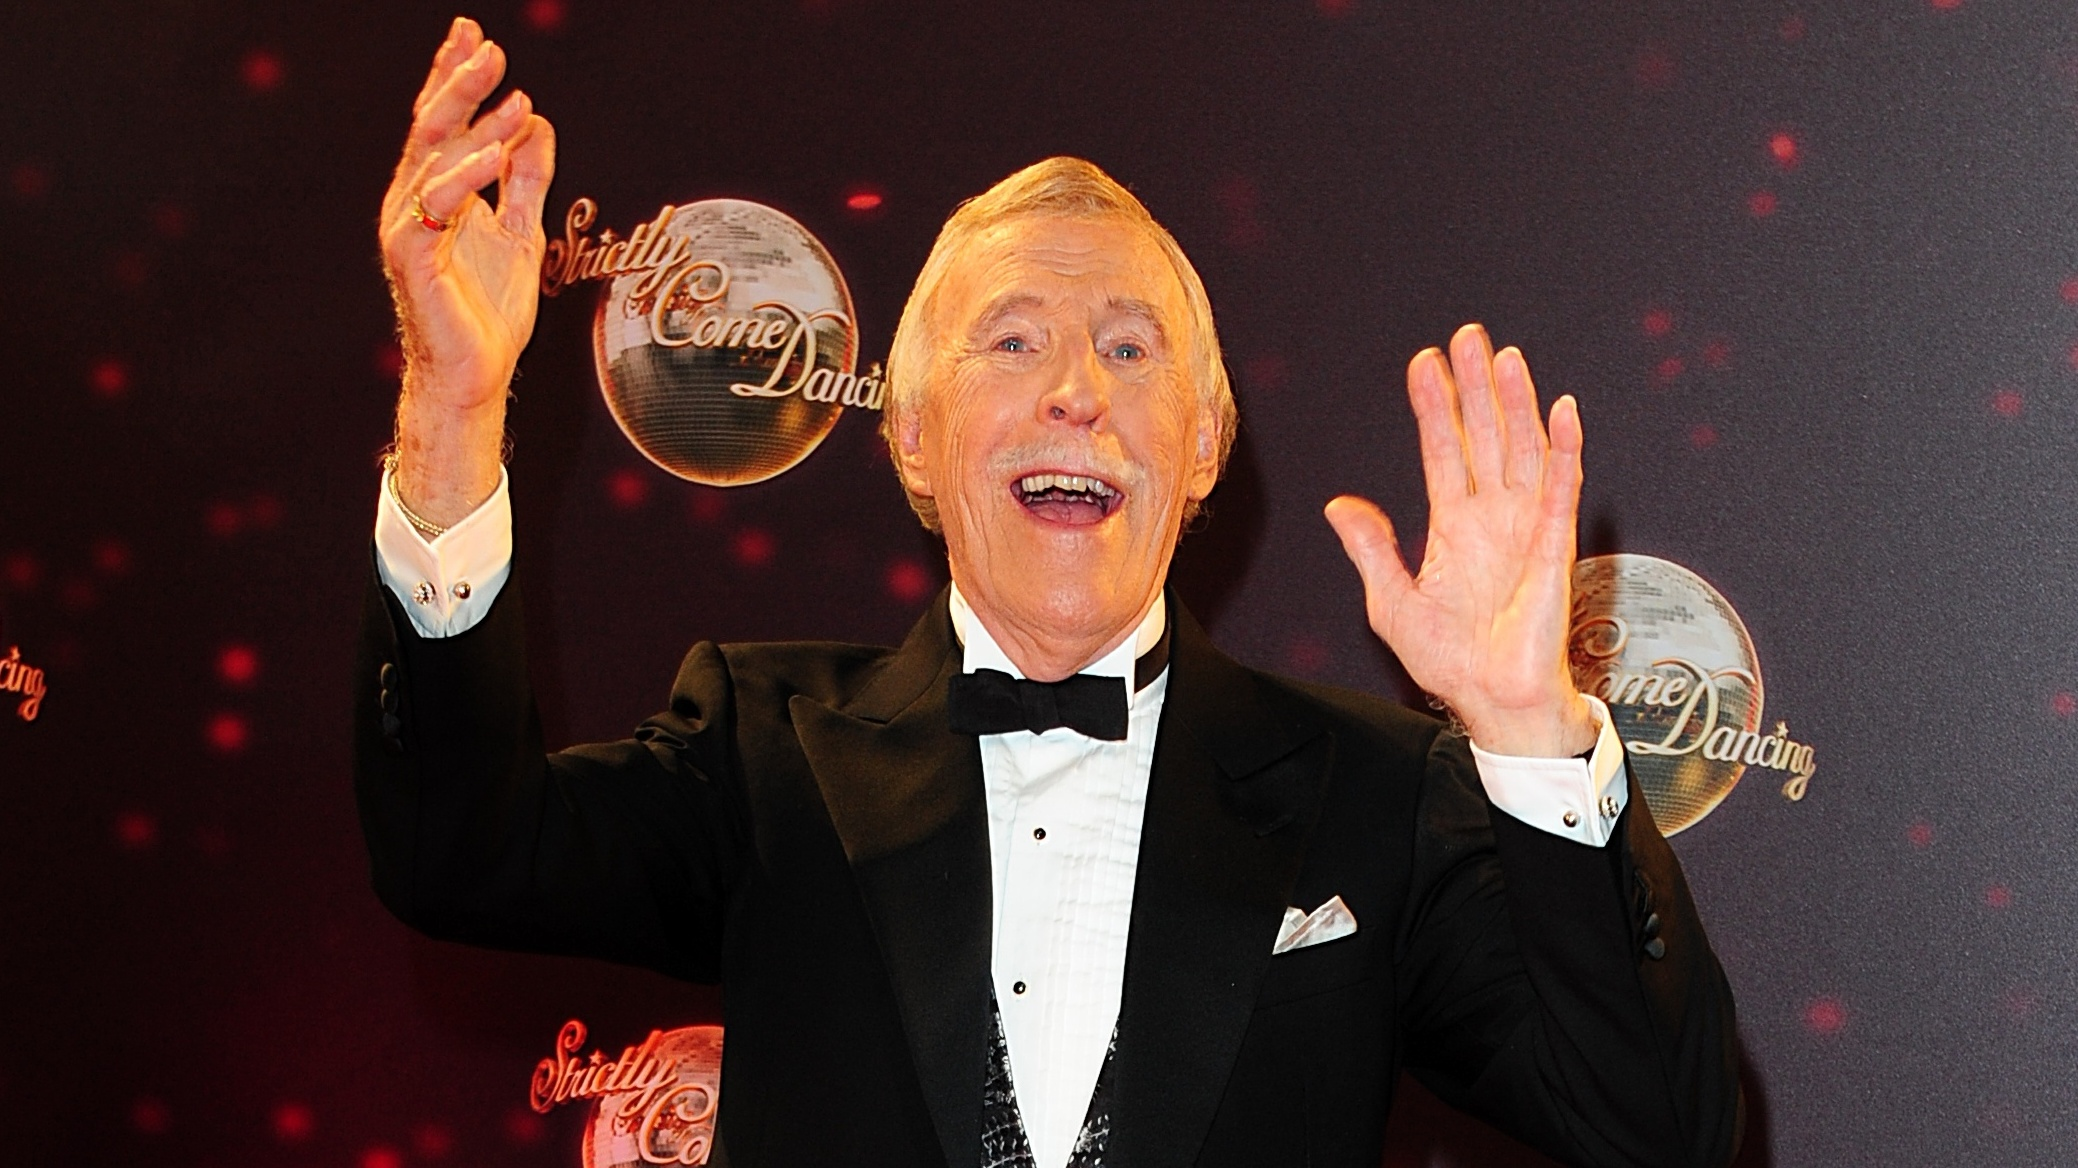 QUIZ: Which Of These Catchphrases Belonged To Bruce Forsyth?